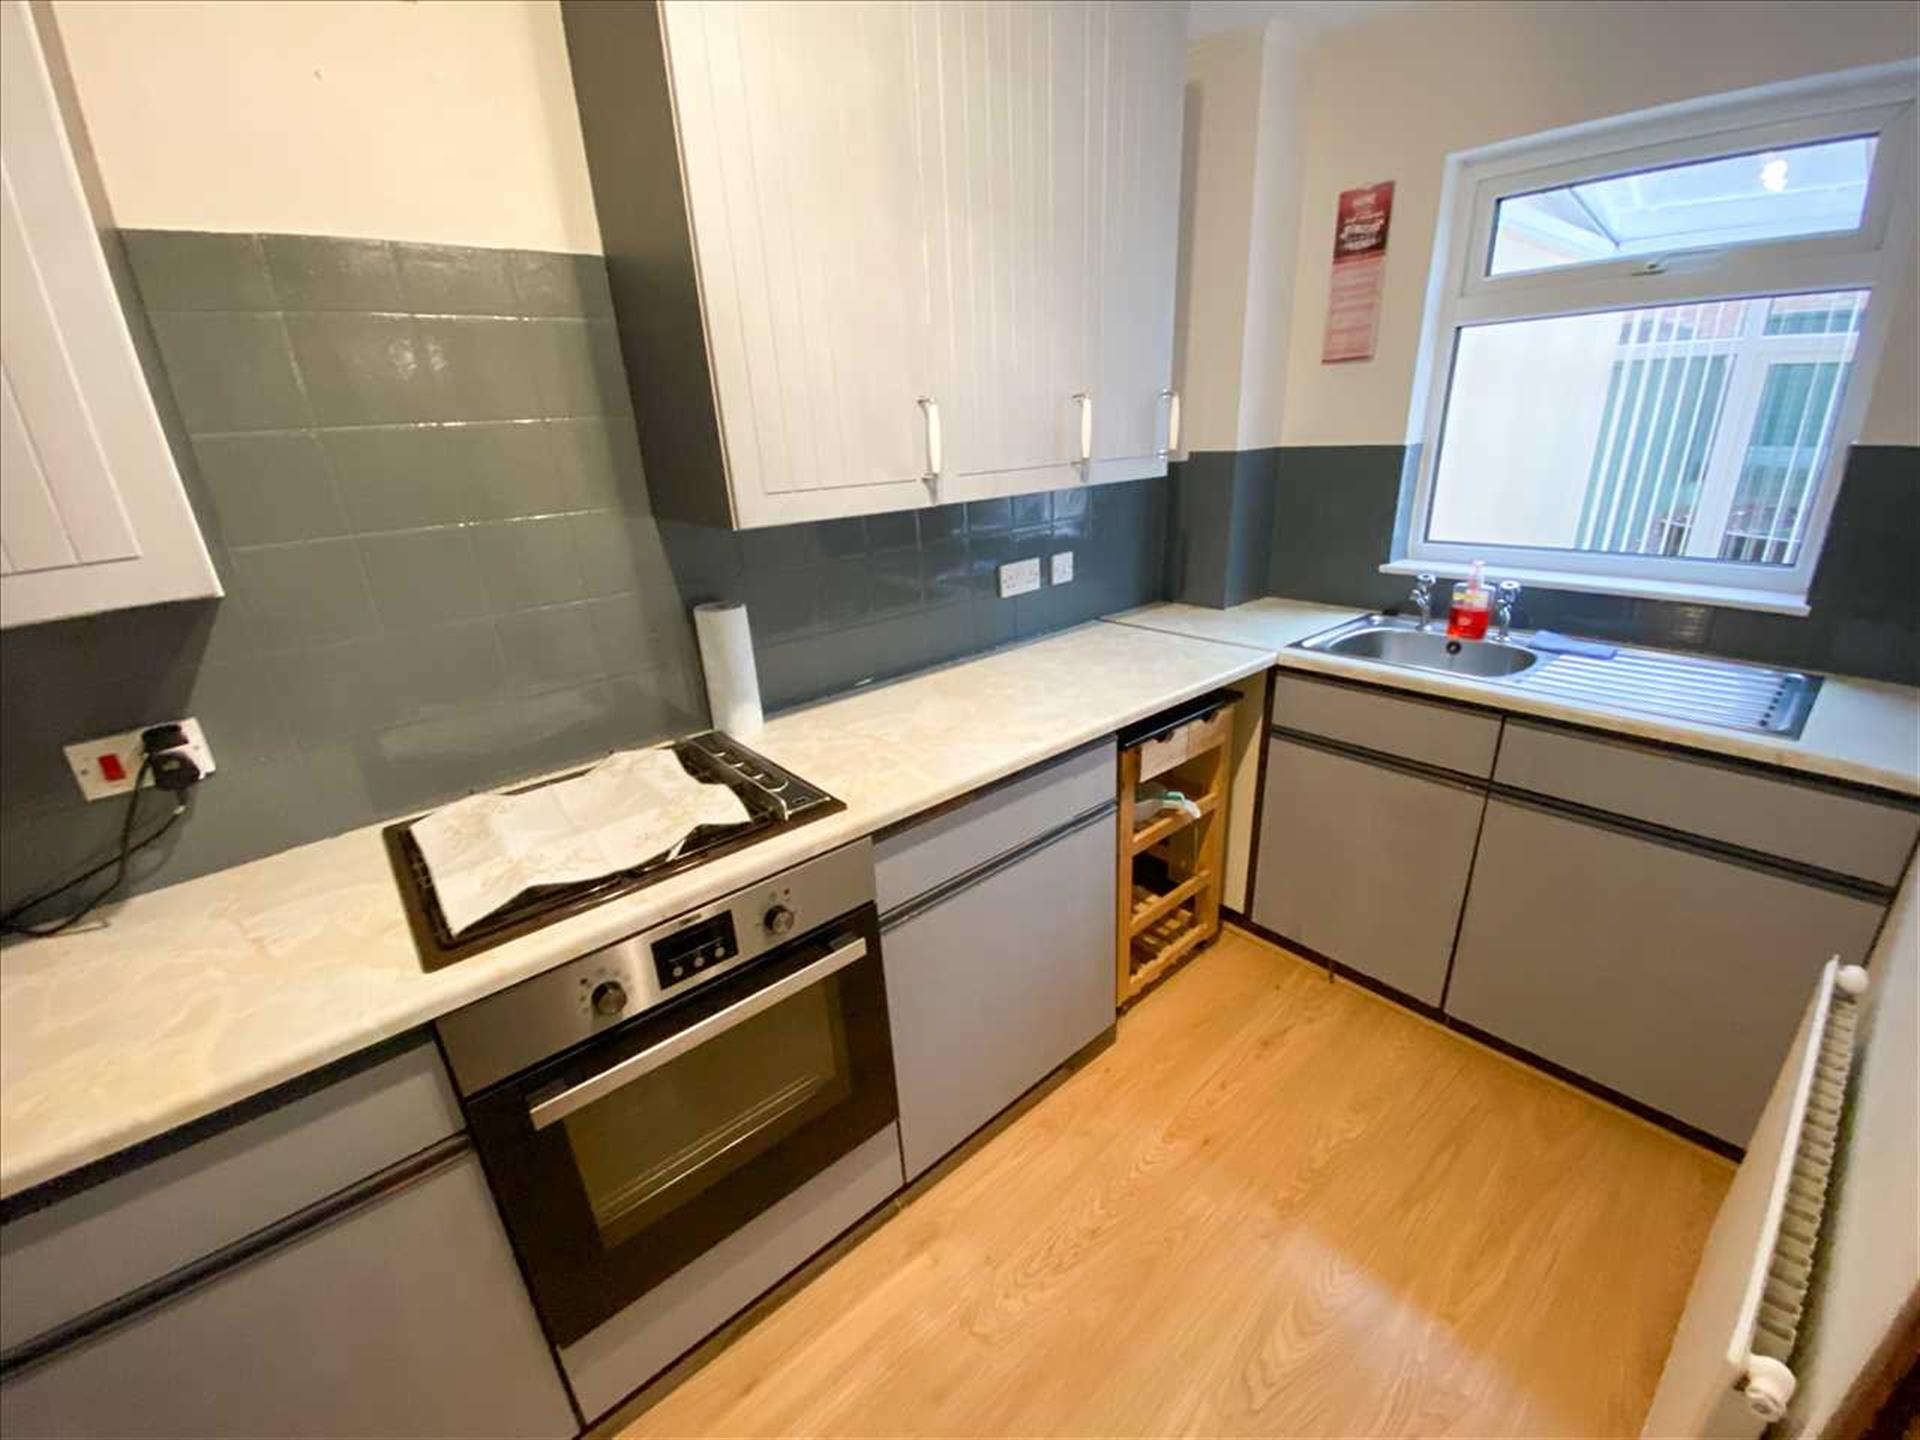 1 Bedroom Semi-detached House For Sale - Kitchen